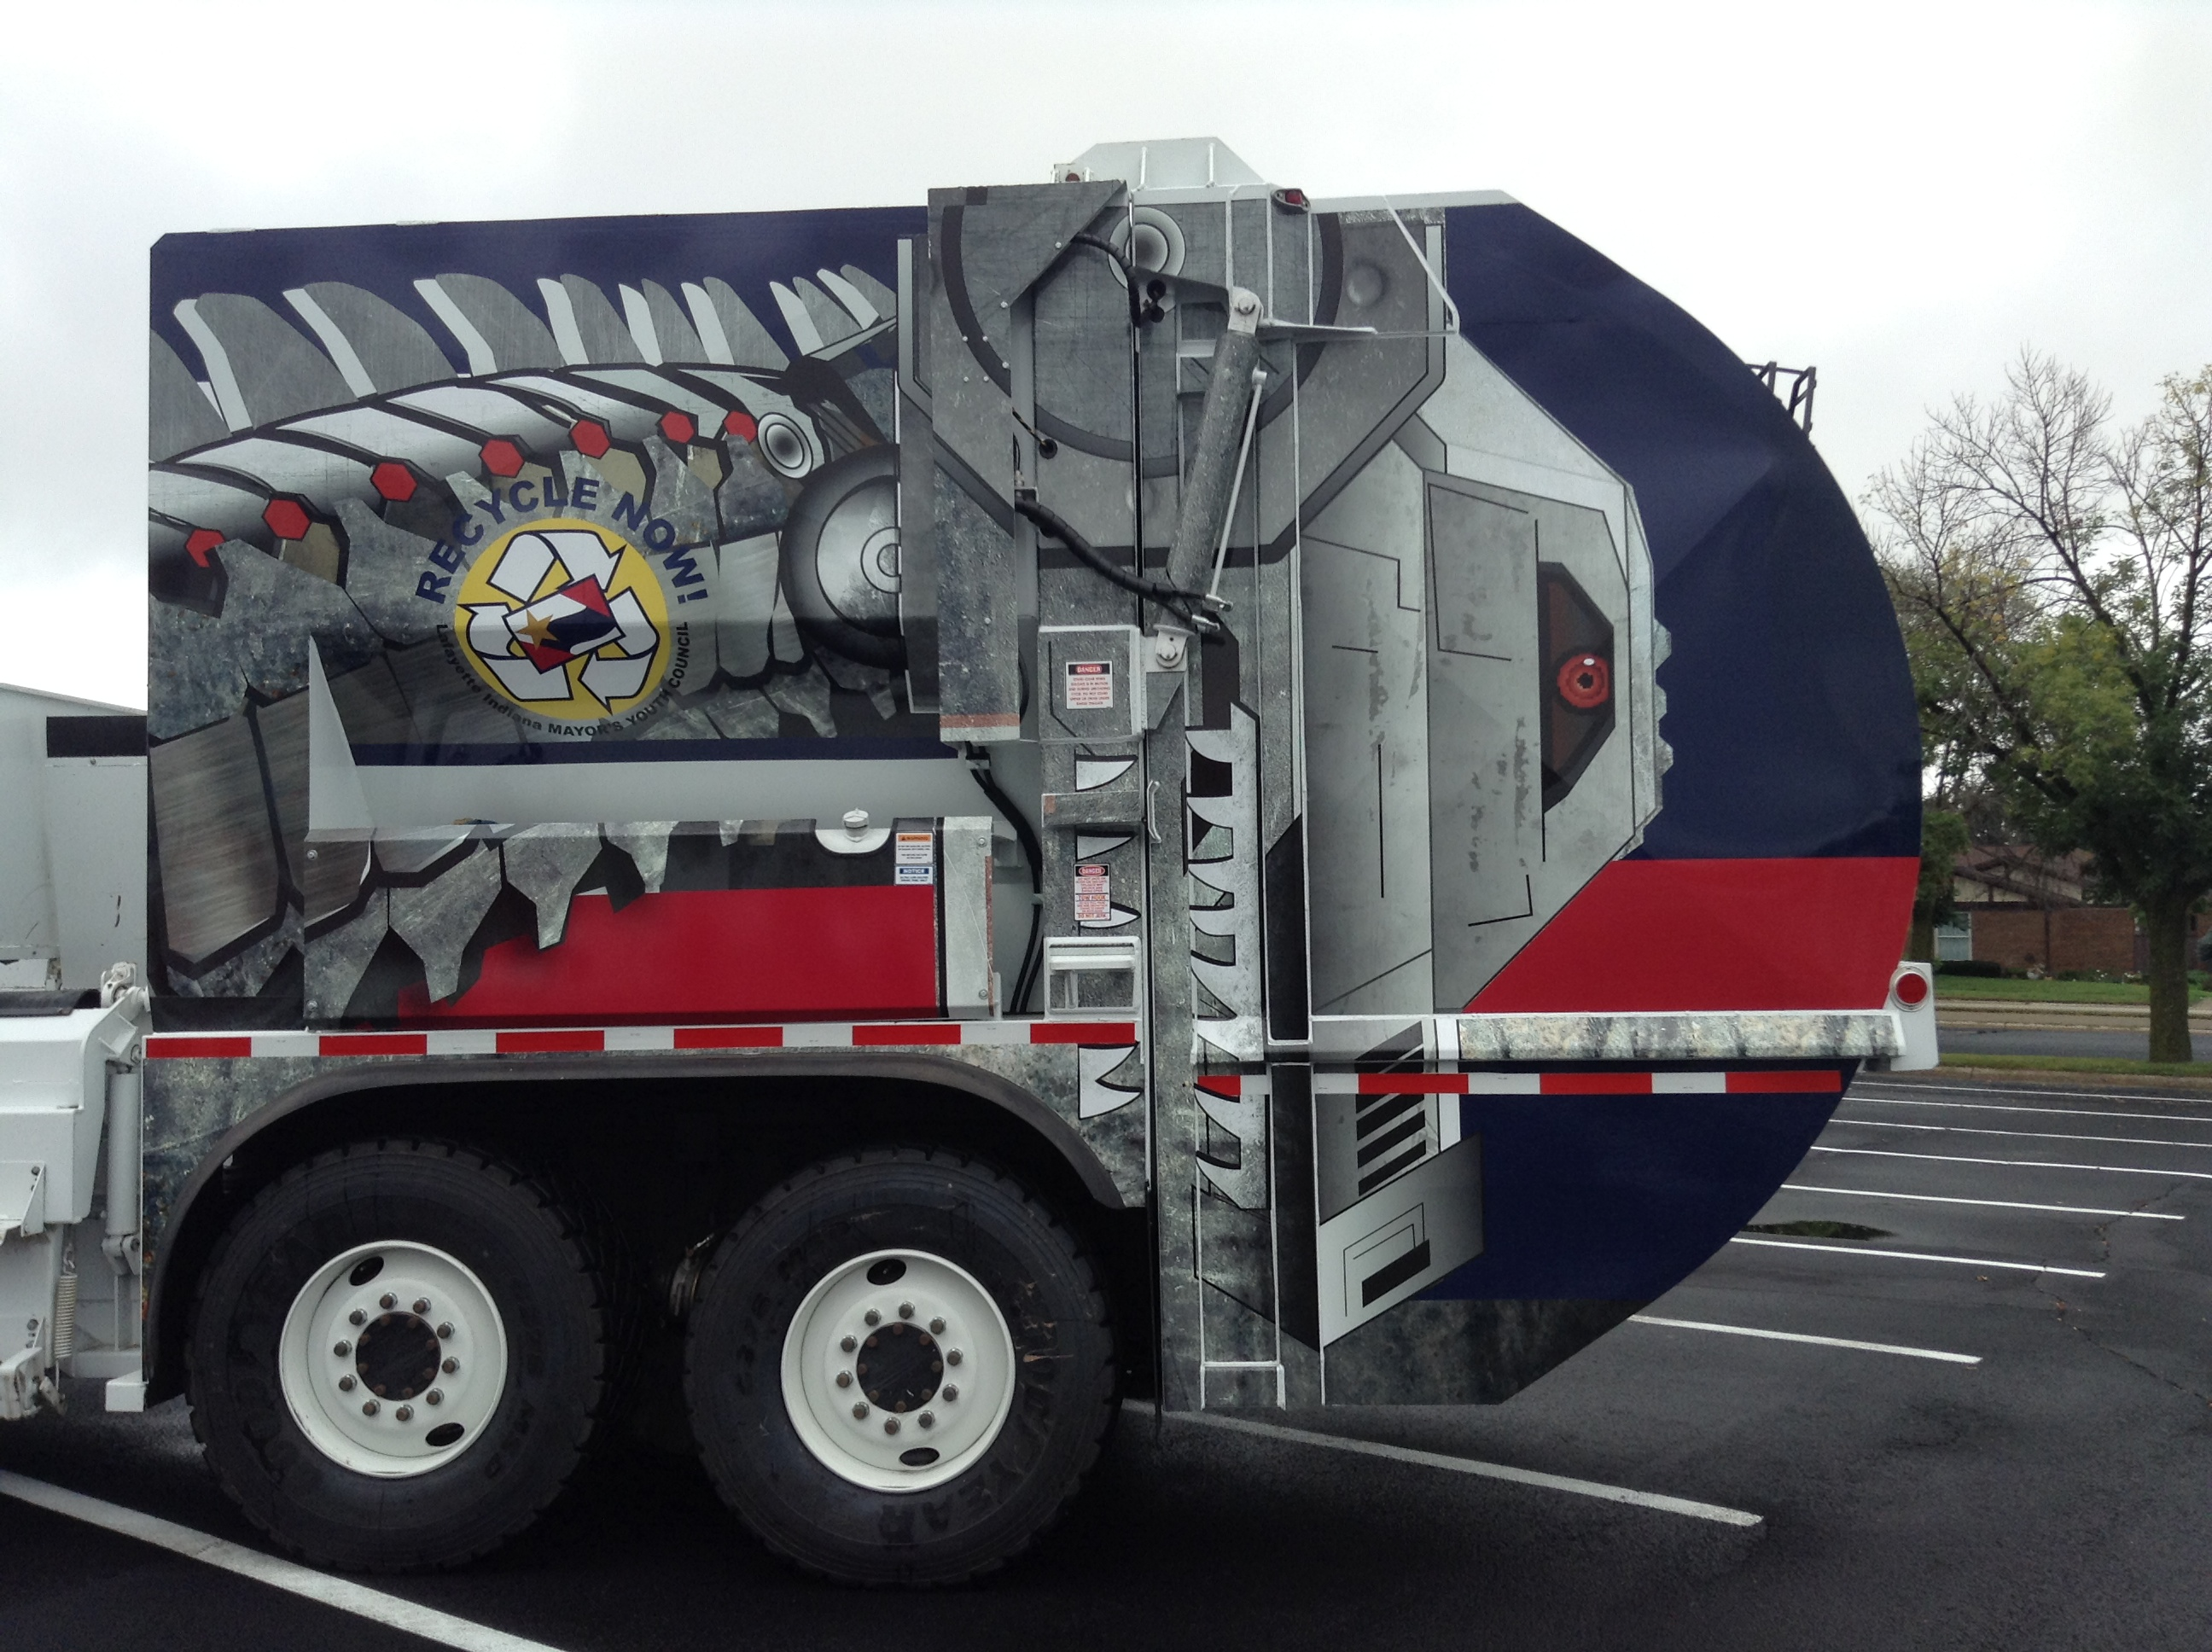 A trash truck with a robot mural on the side